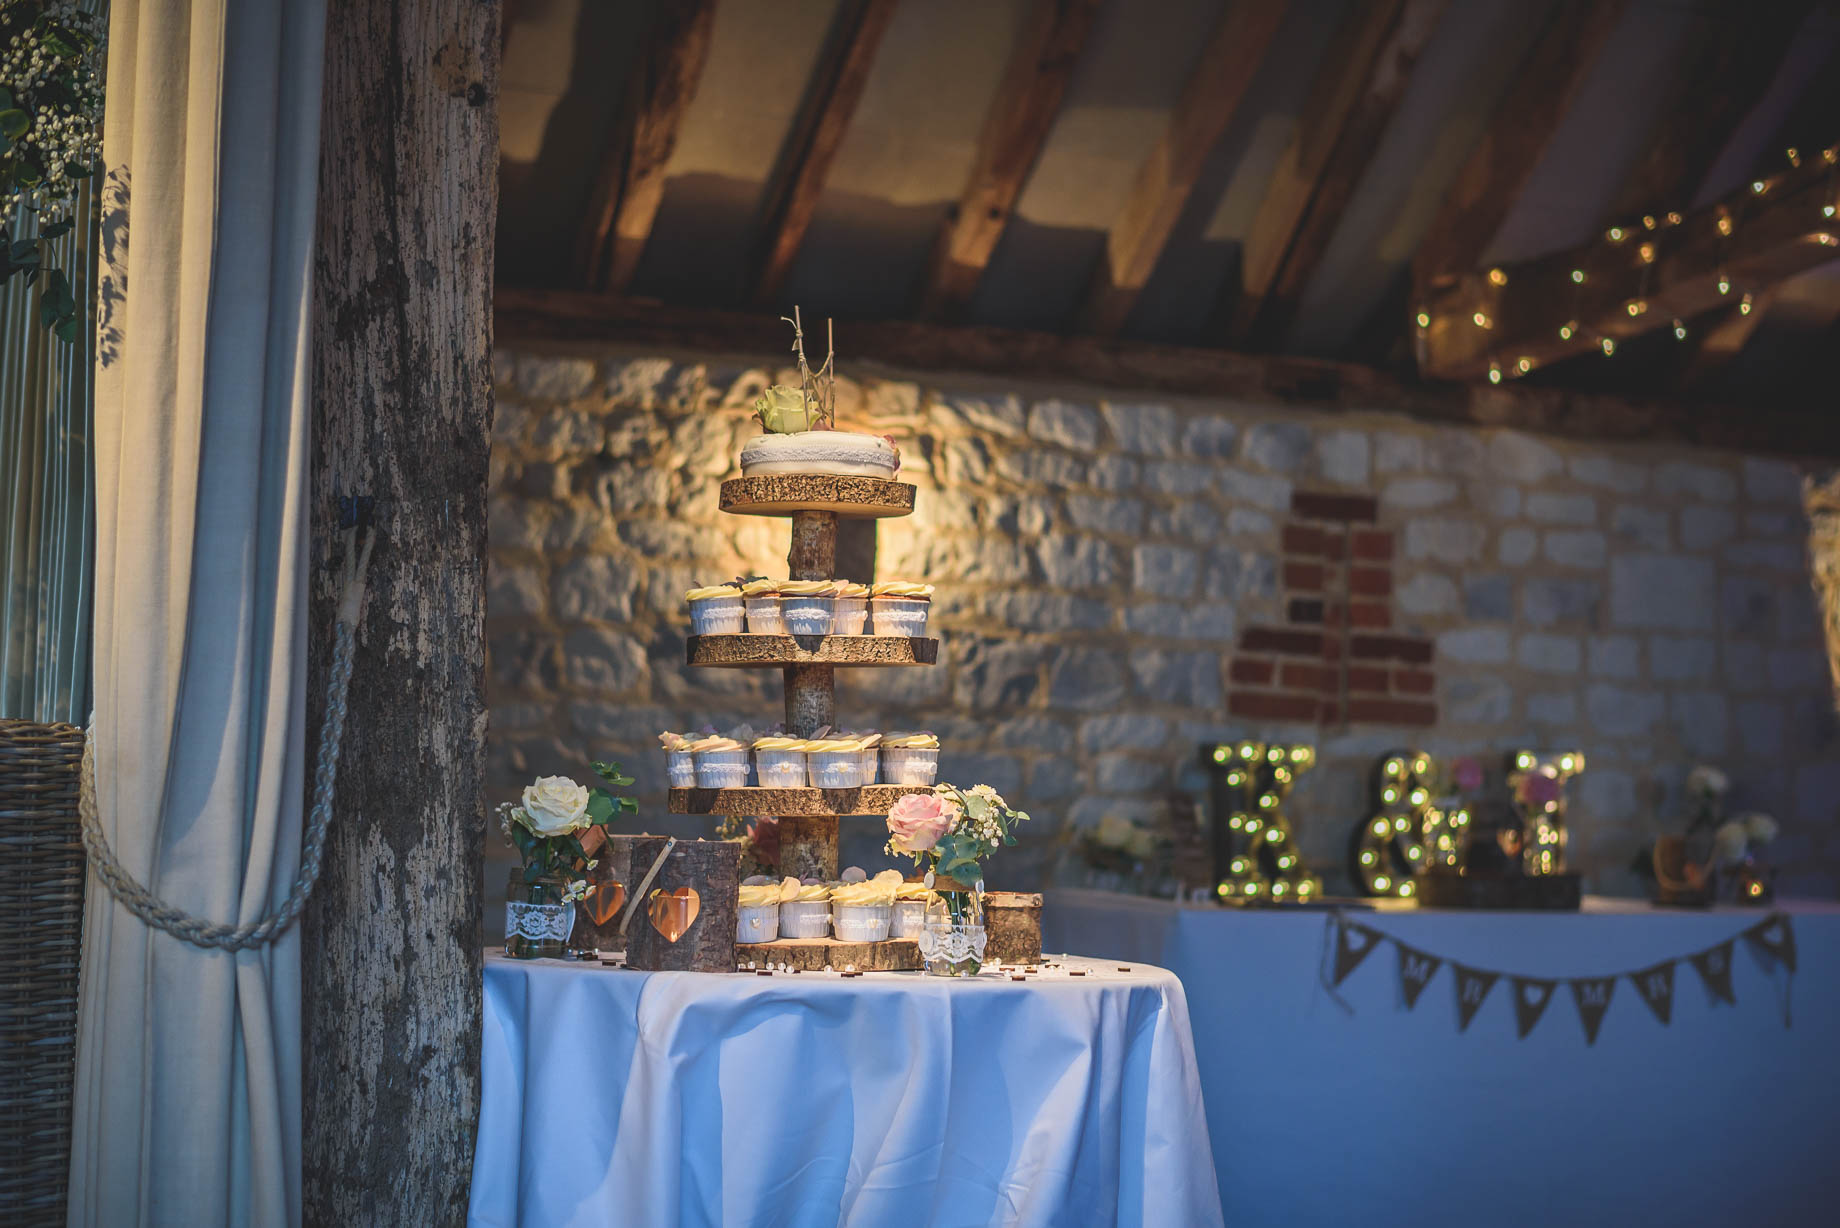 Bury Court Barn wedding photography - Guy Collier Photography - Karen and John (115 of 166)